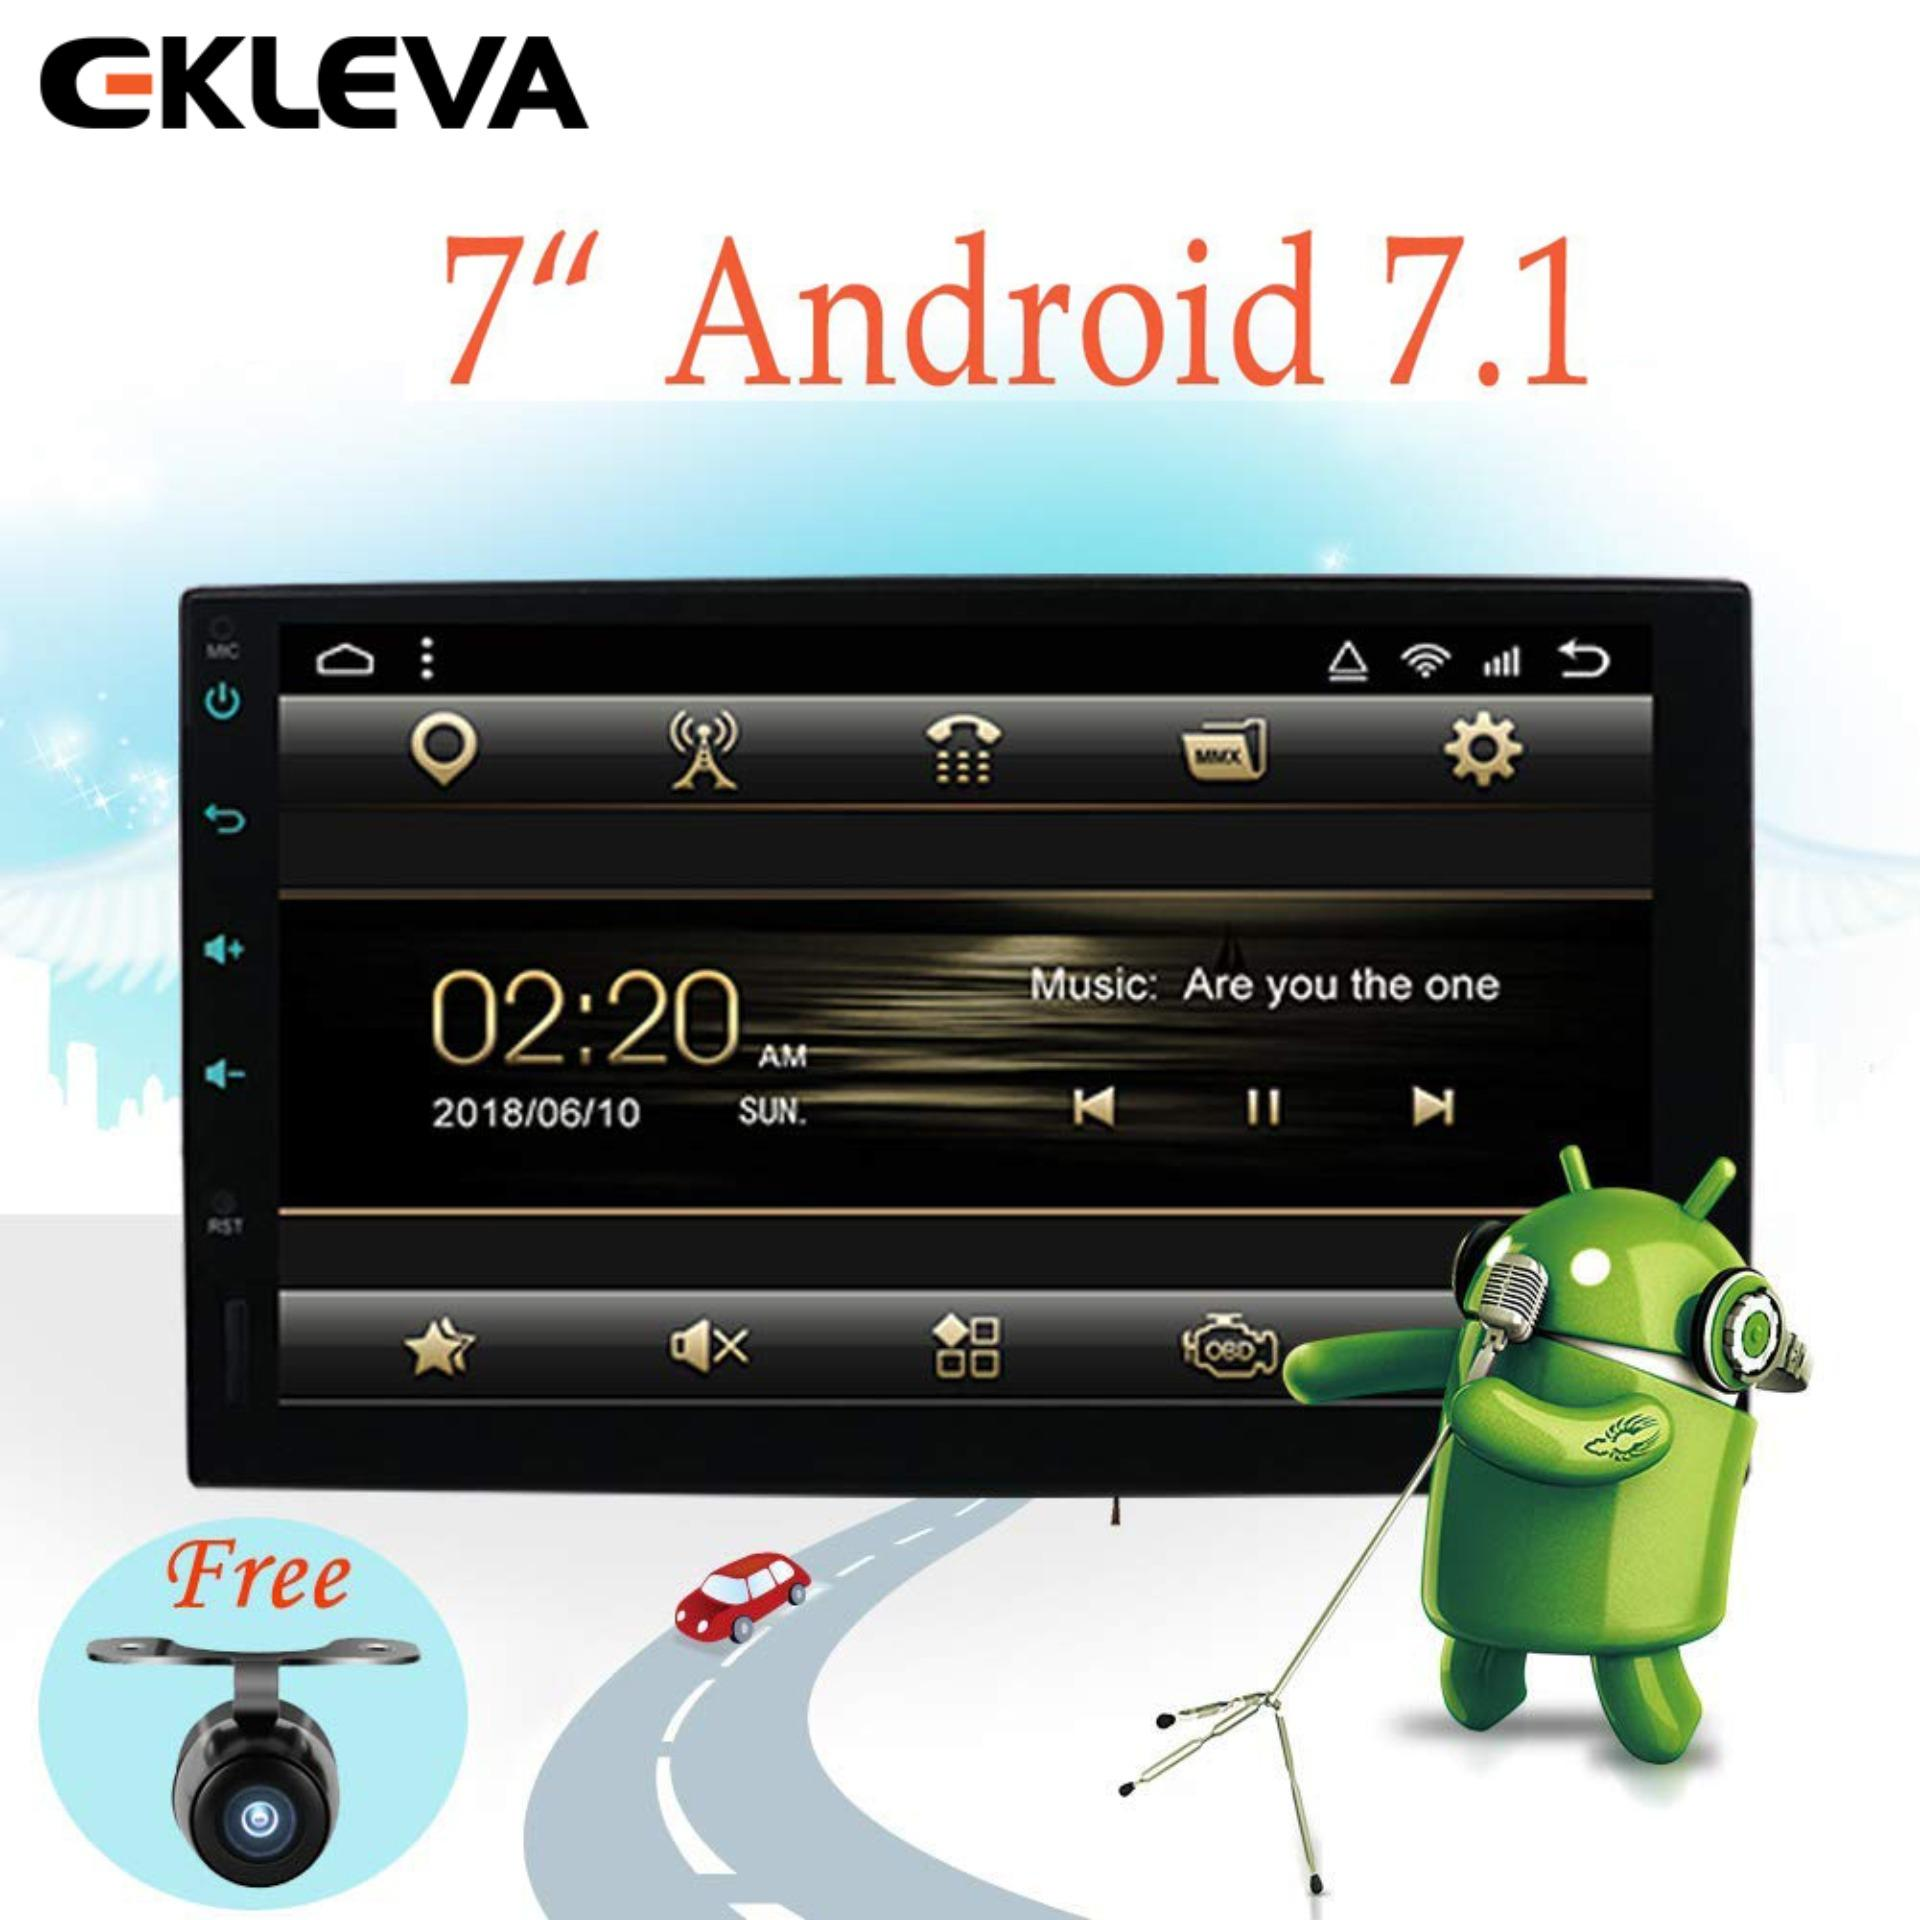 "EKLEVA Latest Android 7.1 Car Radio 7"" HD 1024 X 600 Touchscreen Car Navigation Stereo - 2 Din Quad core Car Entertainment Multimedia/FM/AM/RDS Radio,GPS,WiFi,BT,Mirror Link - (No DVD Player!) image"